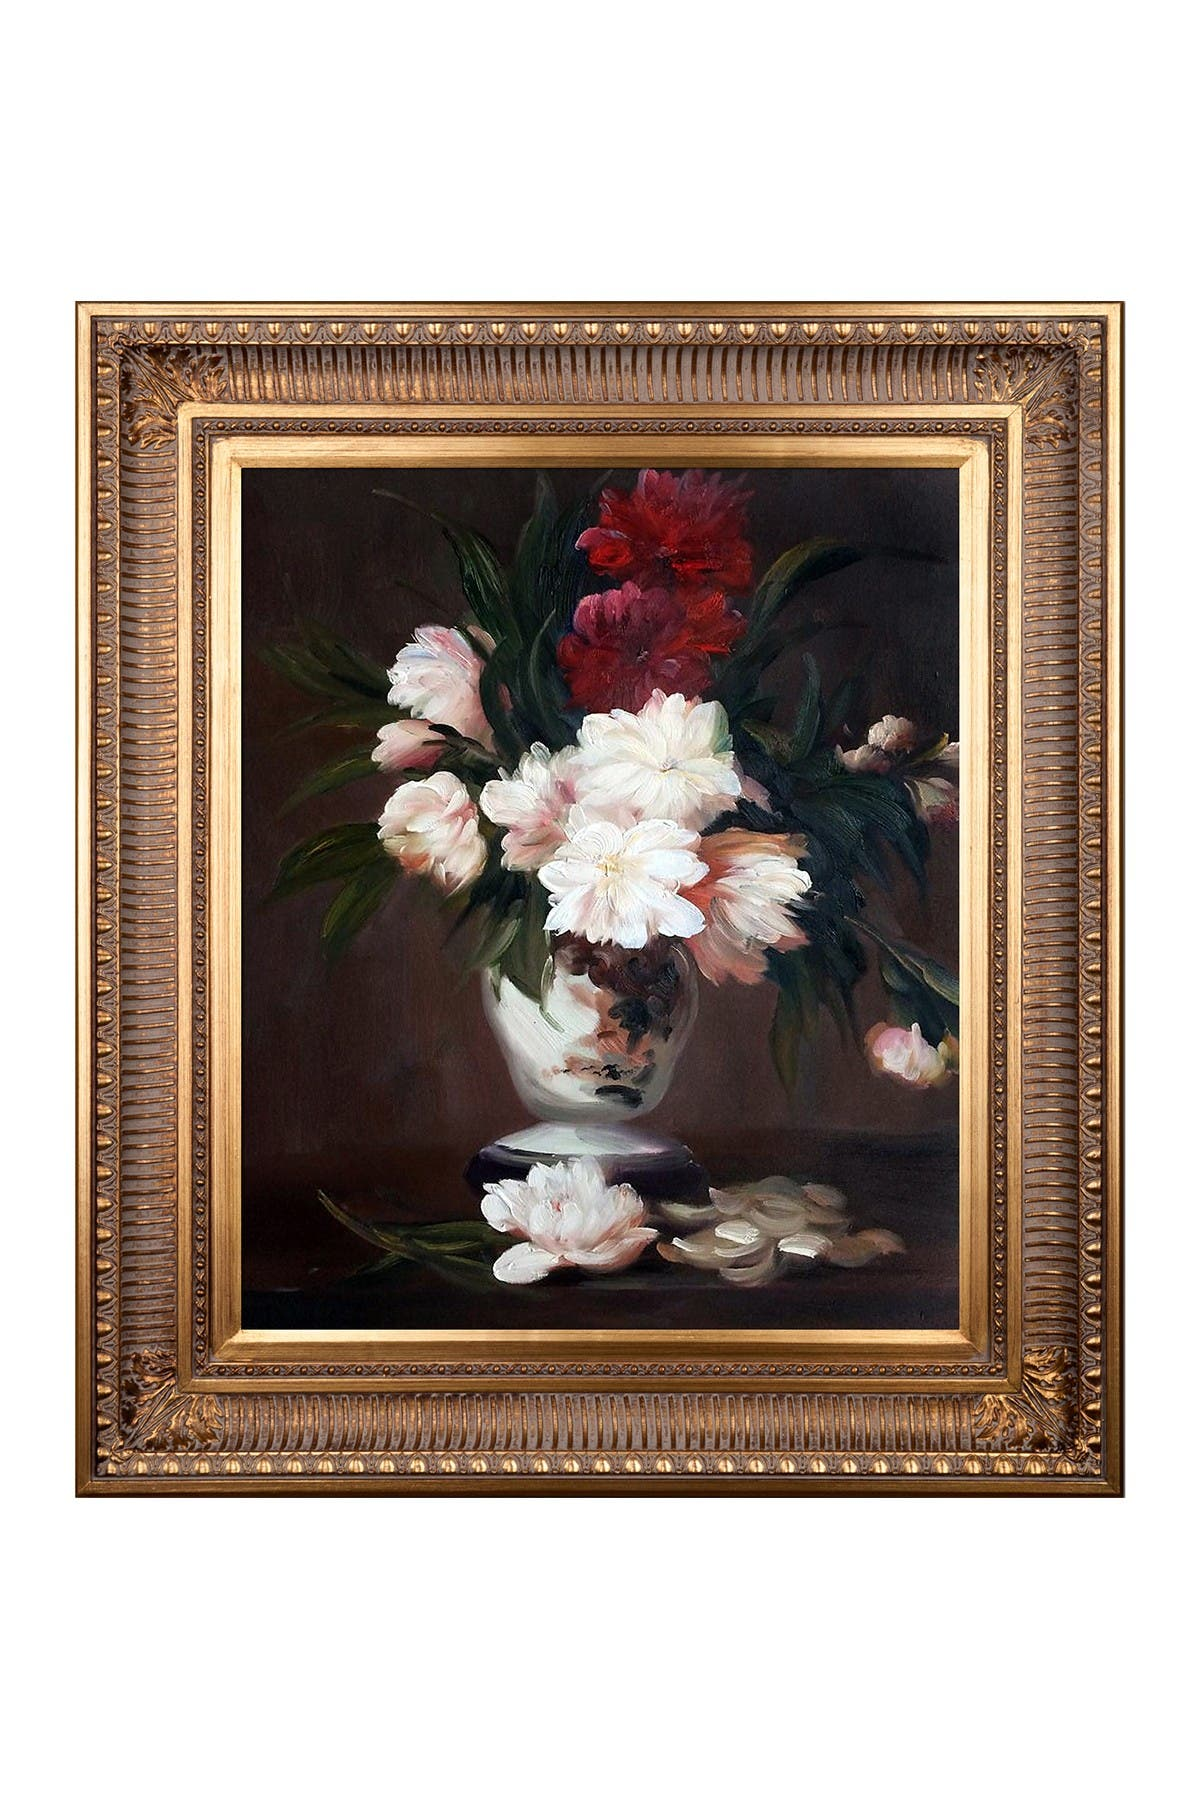 Overstock Art Edouard Manet Peonies In A Vase Framed Canvas Wall Art Nordstrom Rack